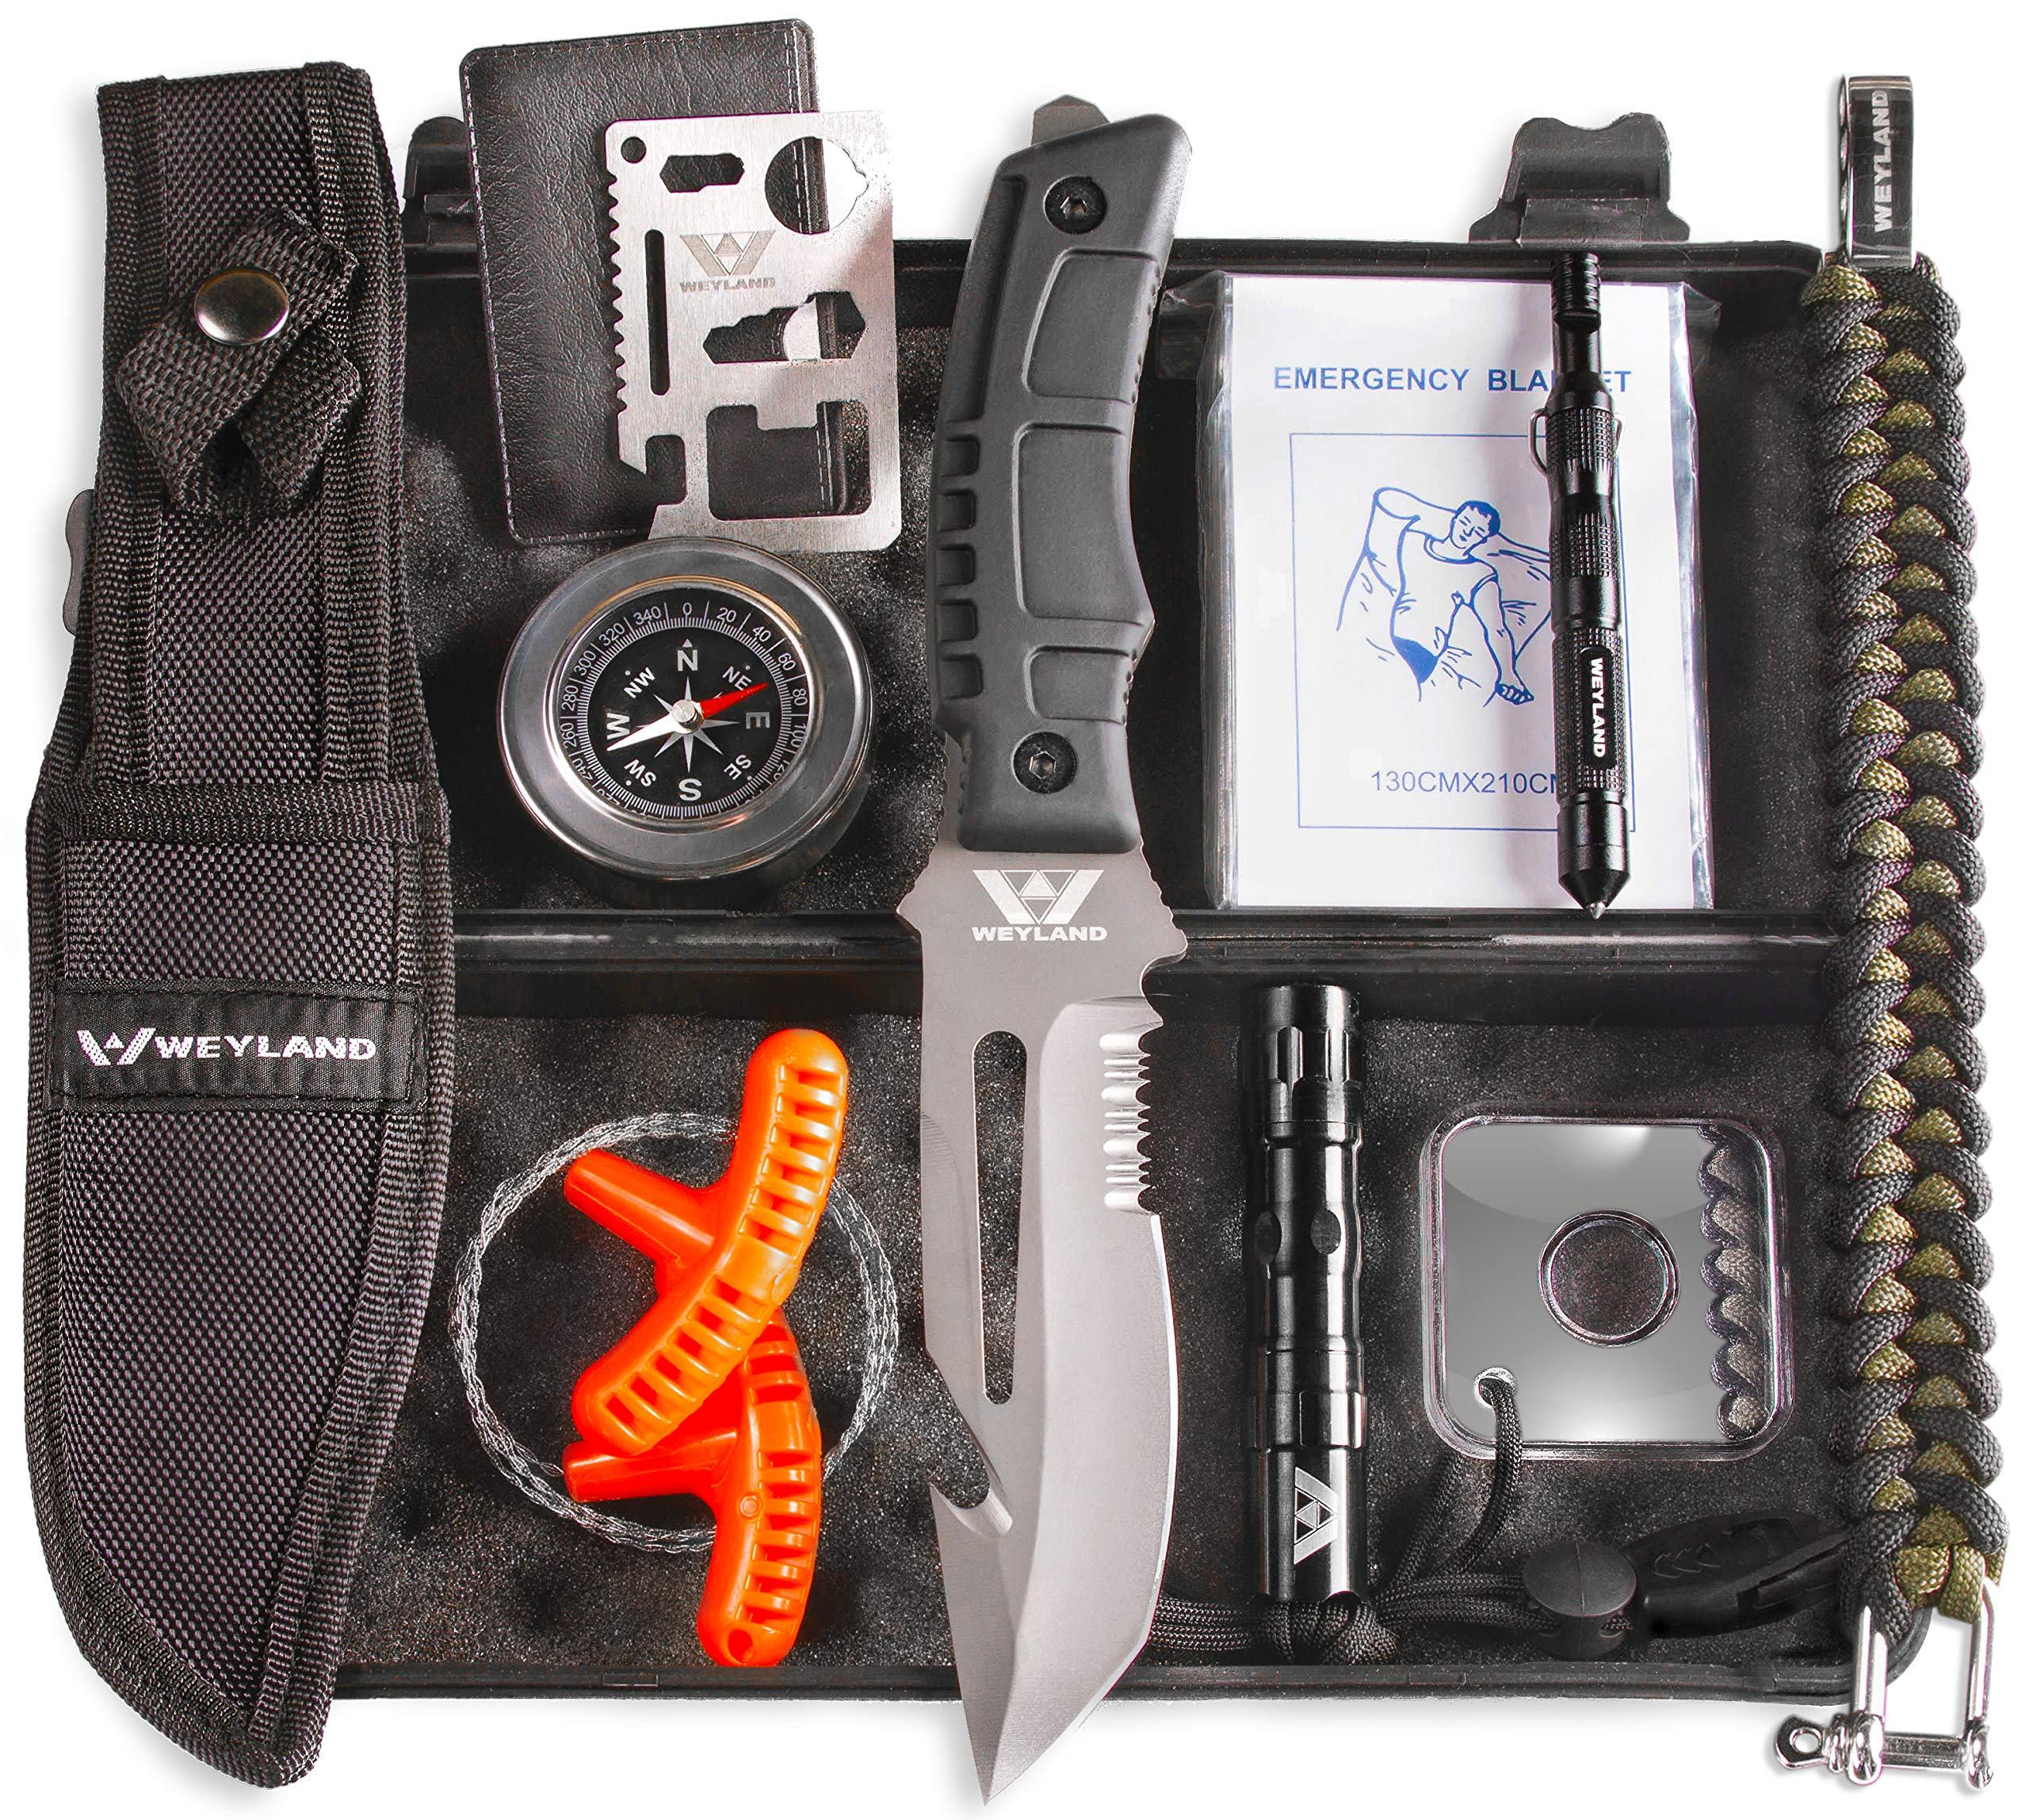 WEYLAND Outdoor Emergency Survival Kit - Tactical EDC Camping Tools and Hiking Gear with a Real Bushcraft Knife by Weyland Outdoors